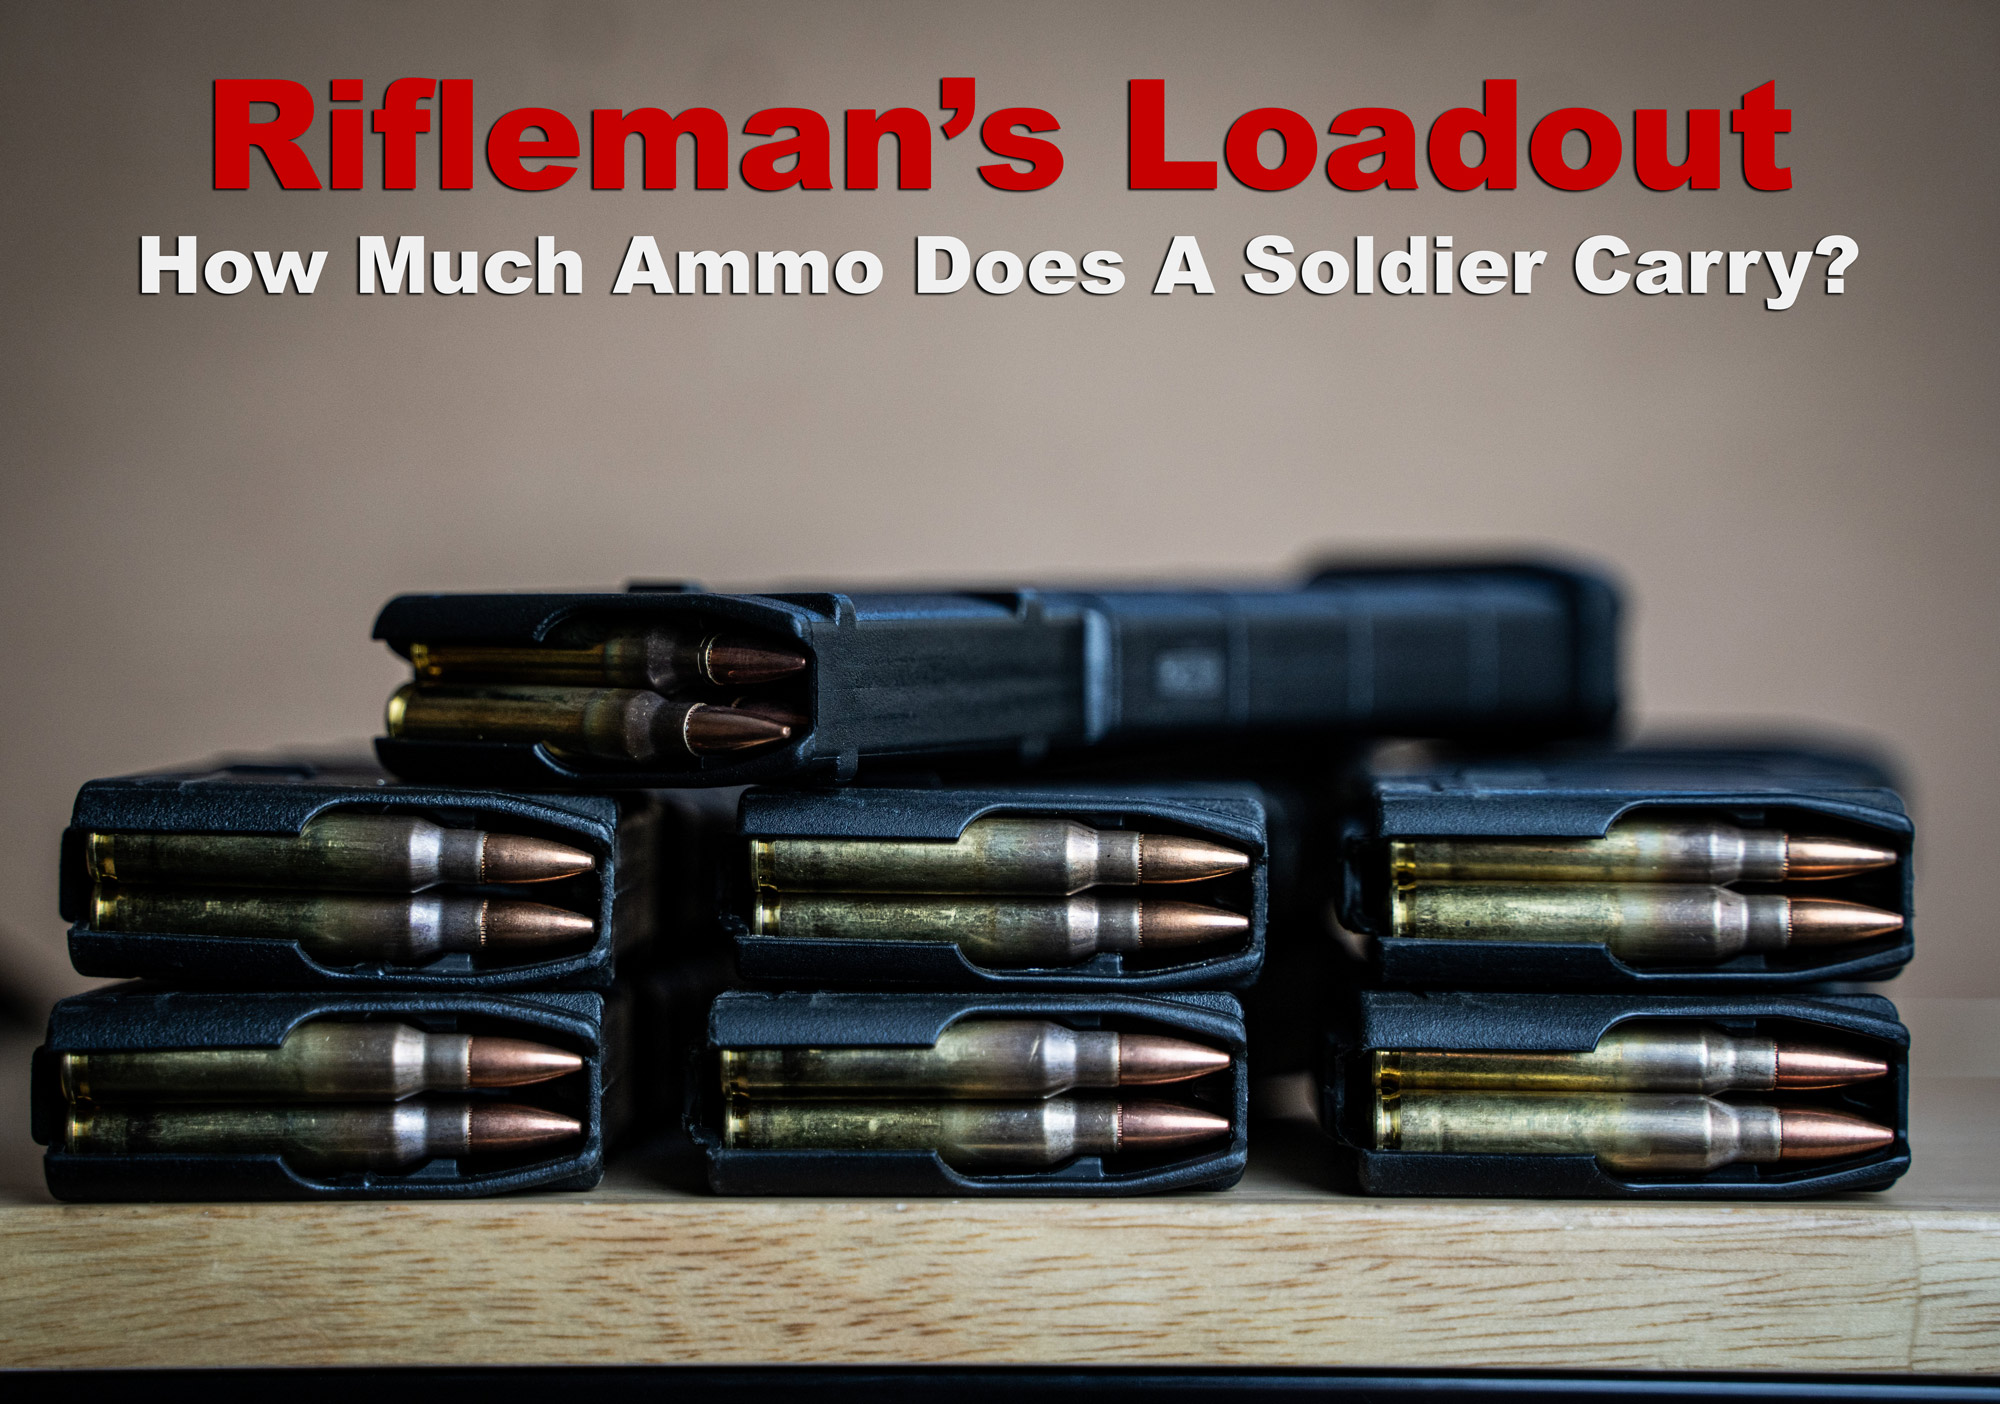 Rifleman's loadout displayed with ammo and AR-15 magazines